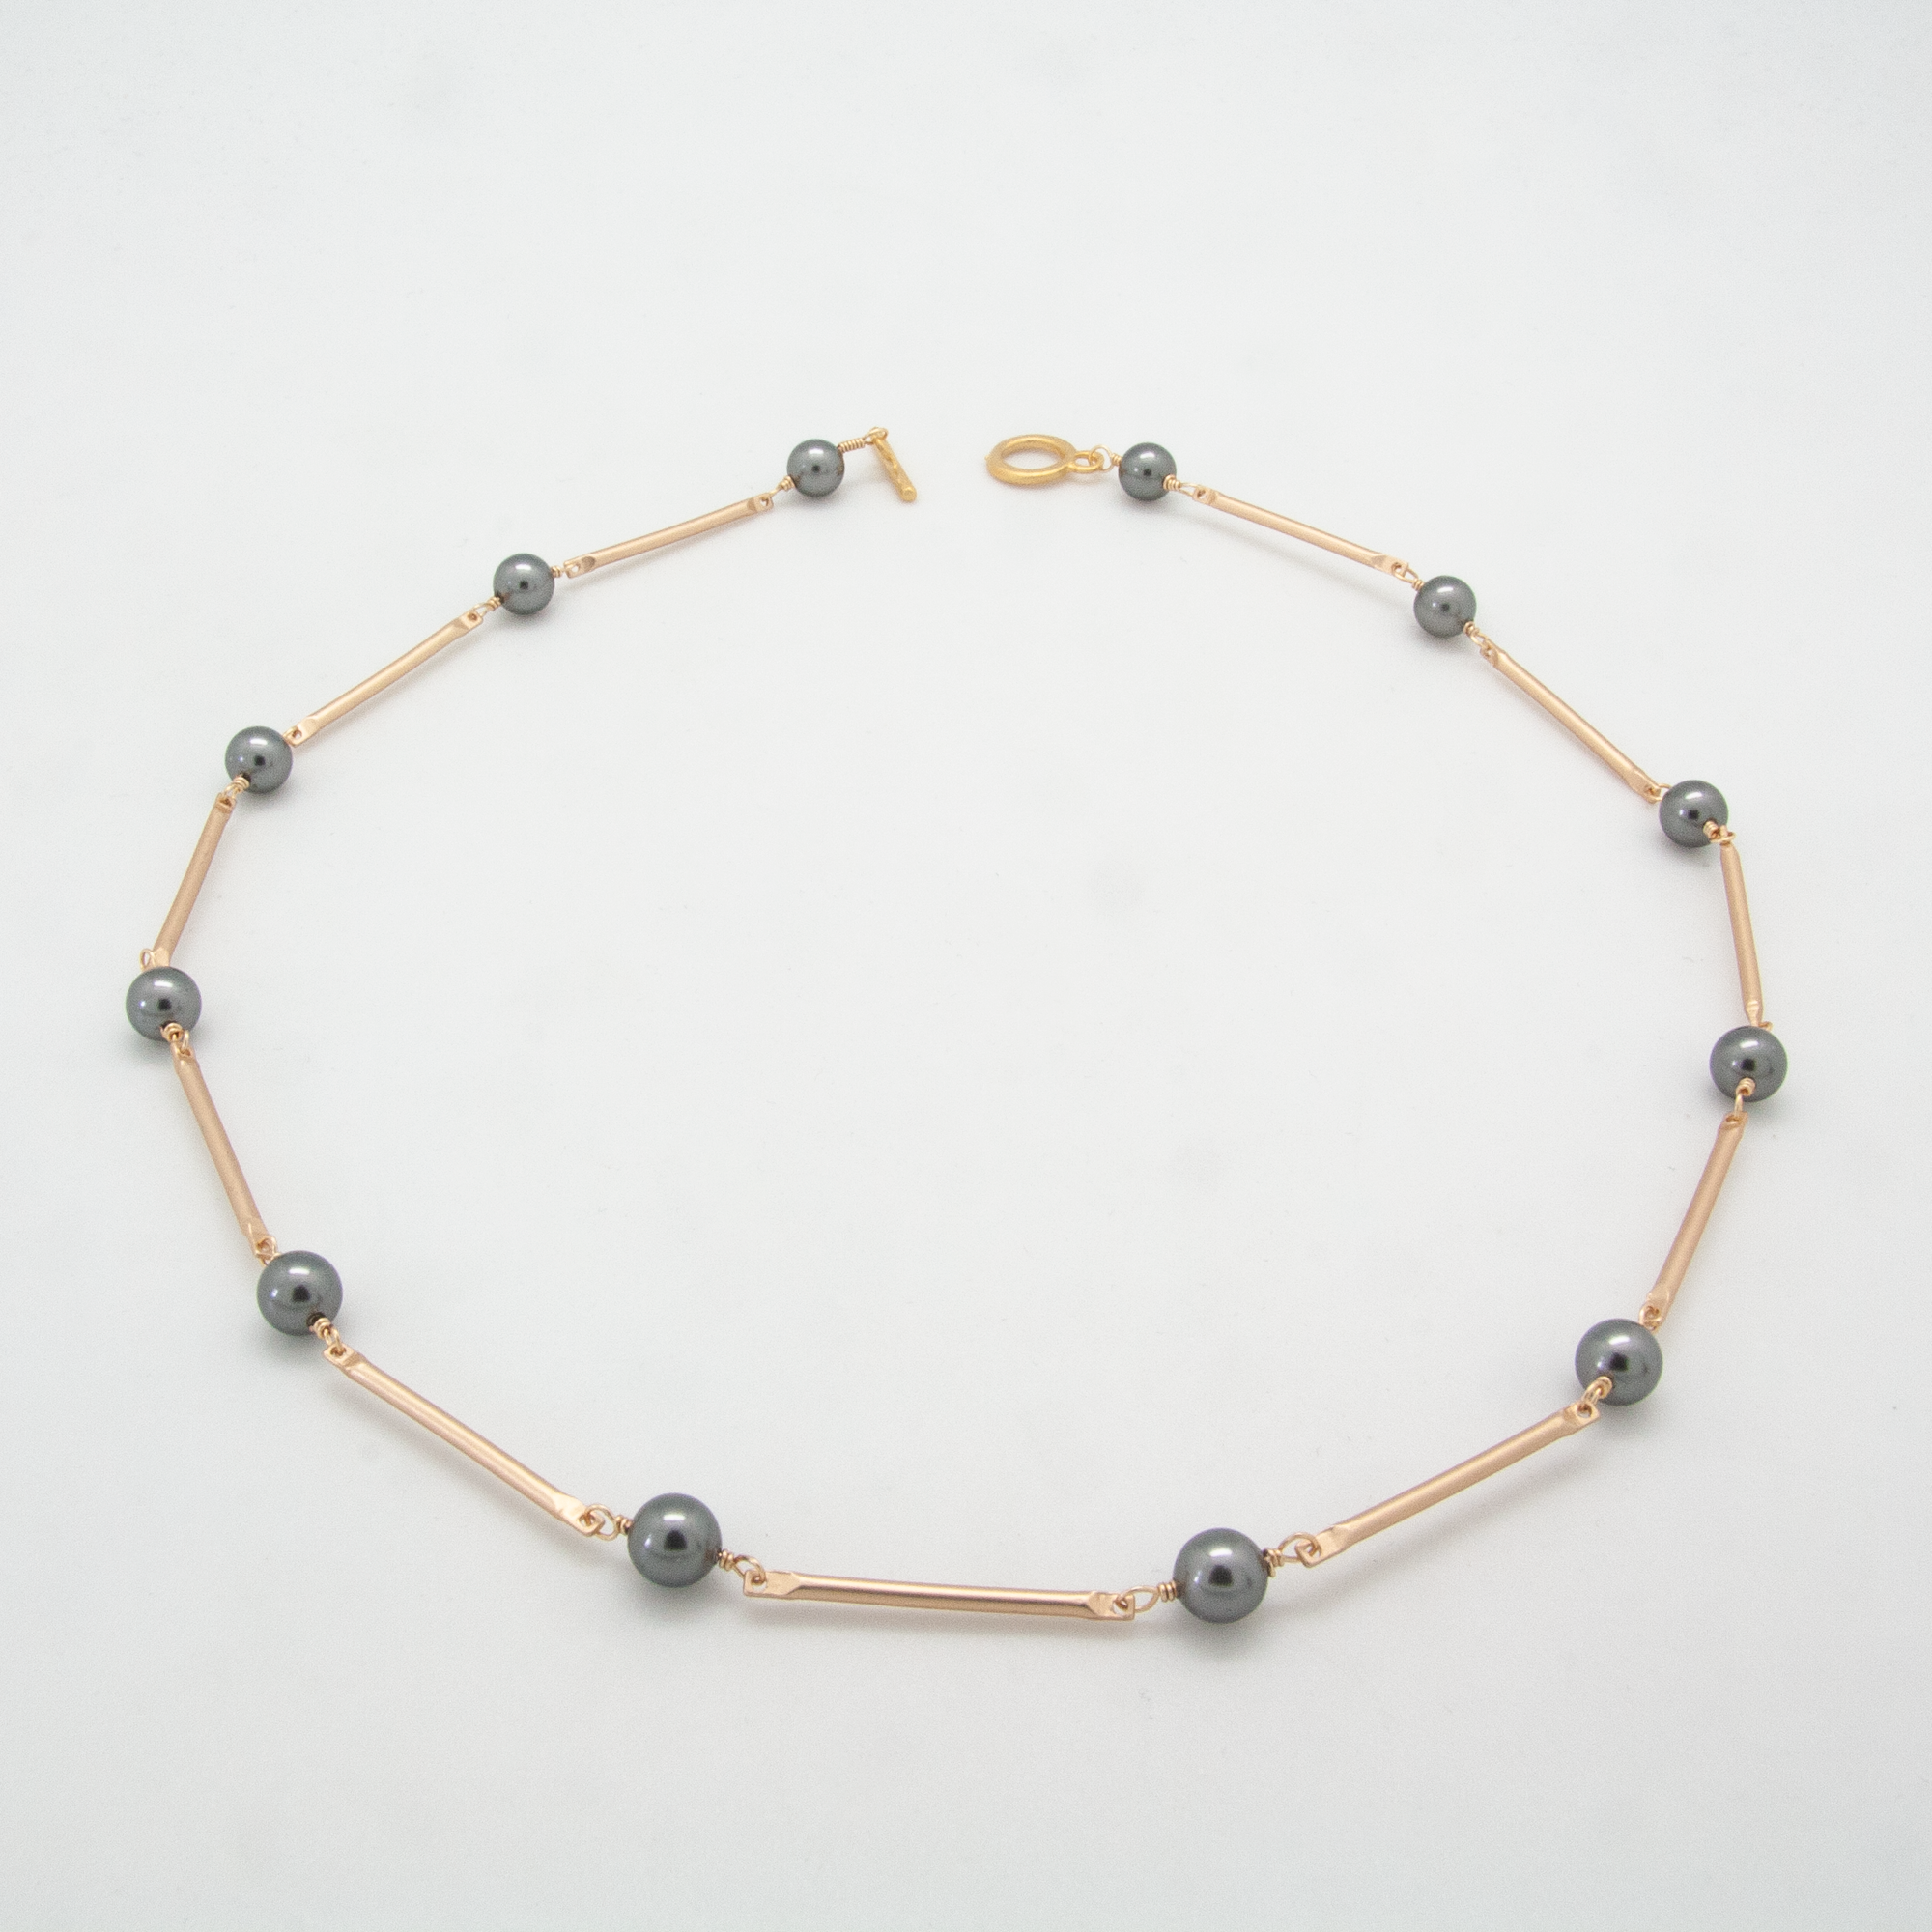 Matte gold bar necklace with Swarovski crystal dark grey pearls by vivien walsh